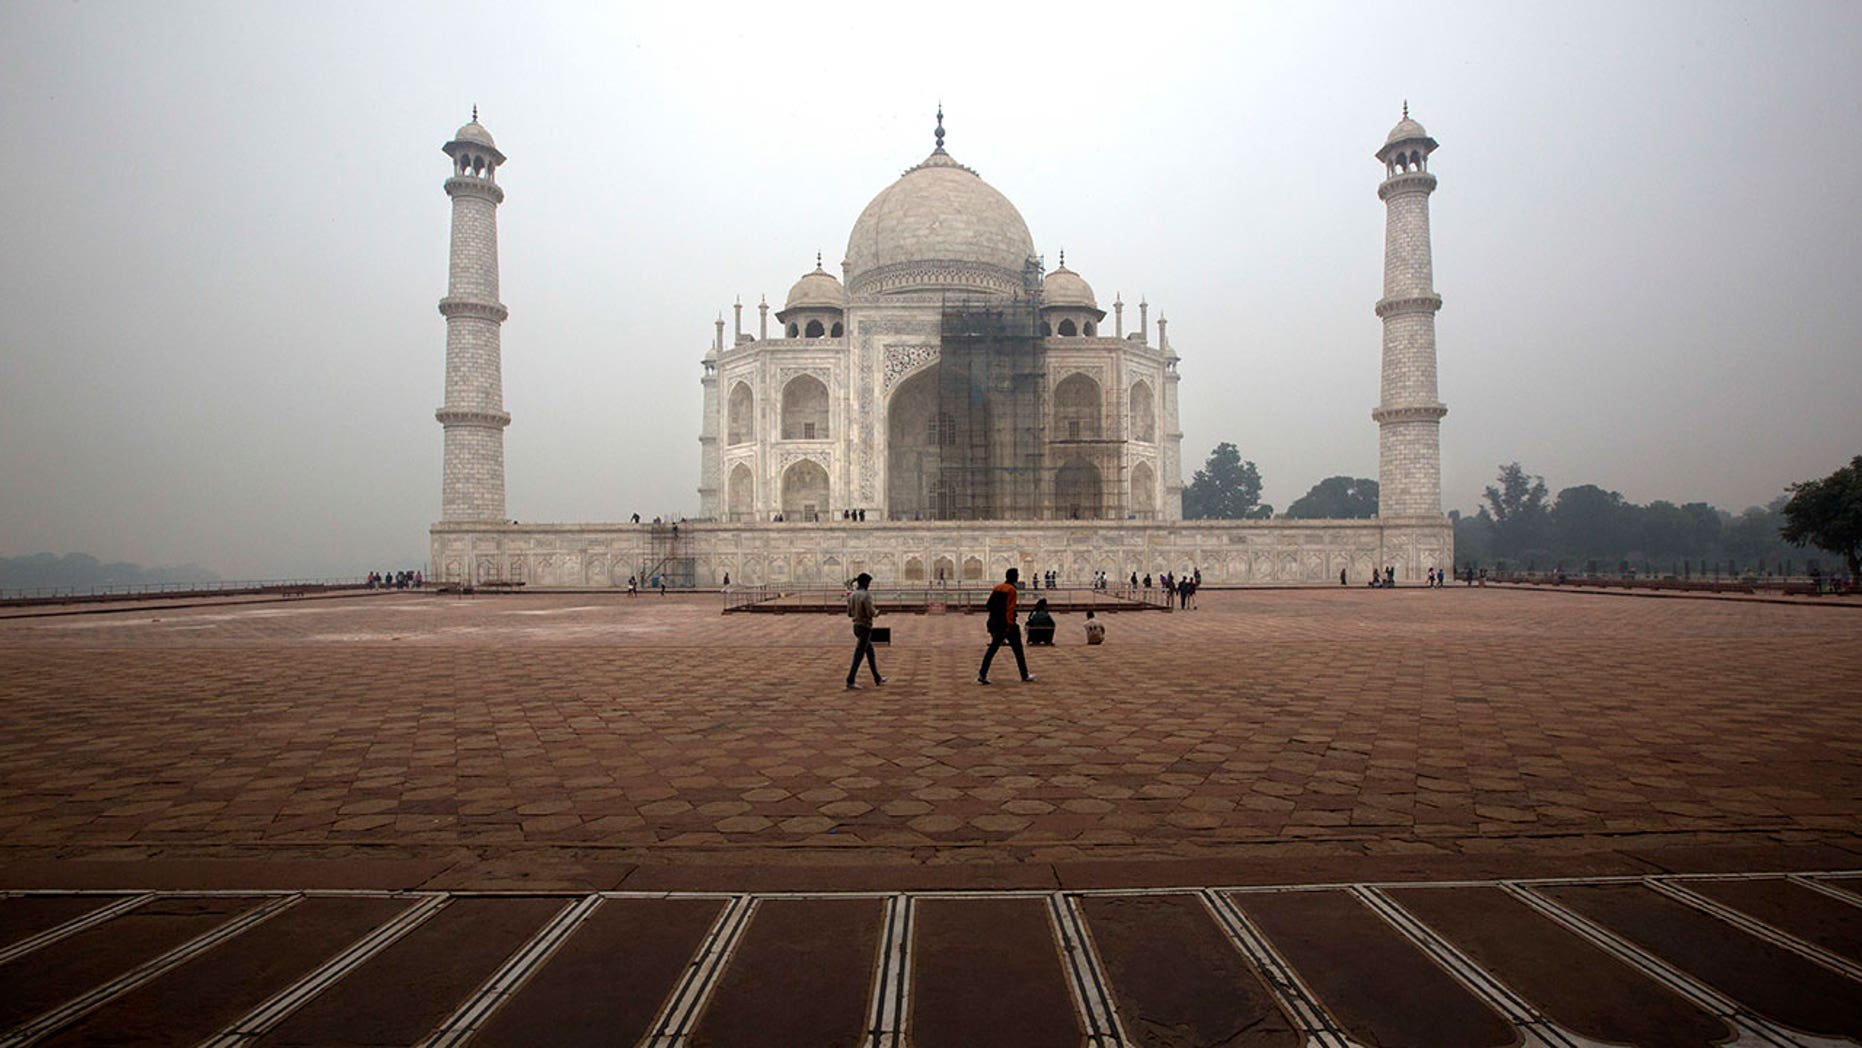 The Archaeological Survey of India has capped the number of Indian visitors to the Taj Mahal at 40,000 per day.